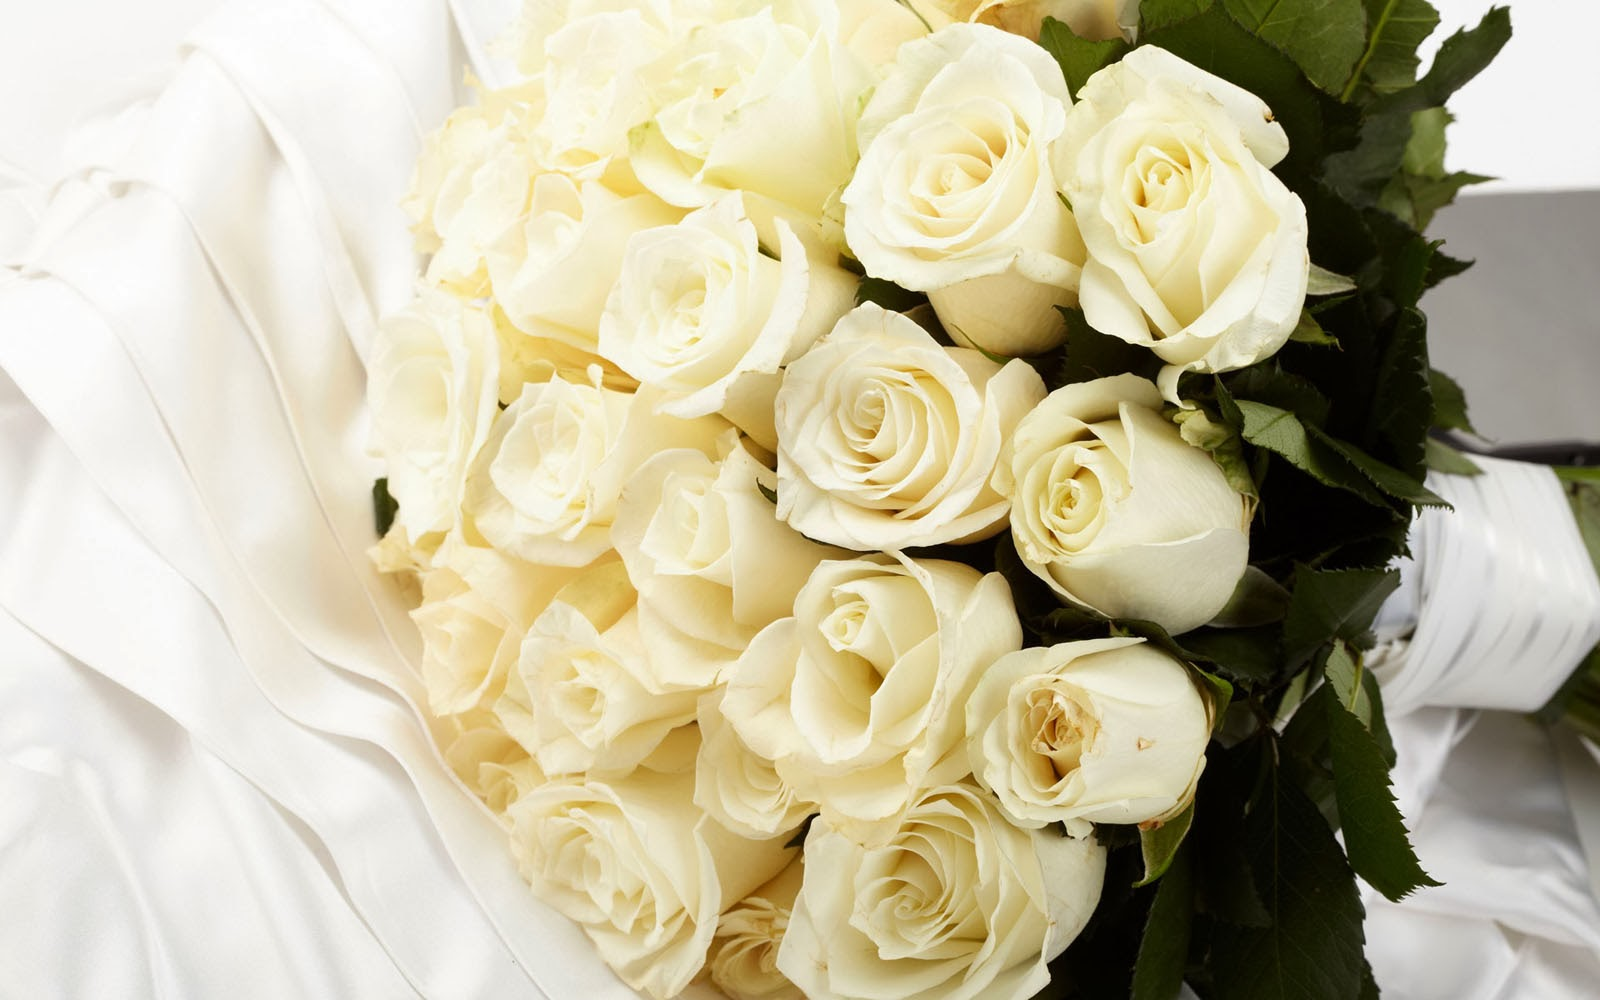 white rose bouquet wallpapers 3d hd wallpapers. Black Bedroom Furniture Sets. Home Design Ideas